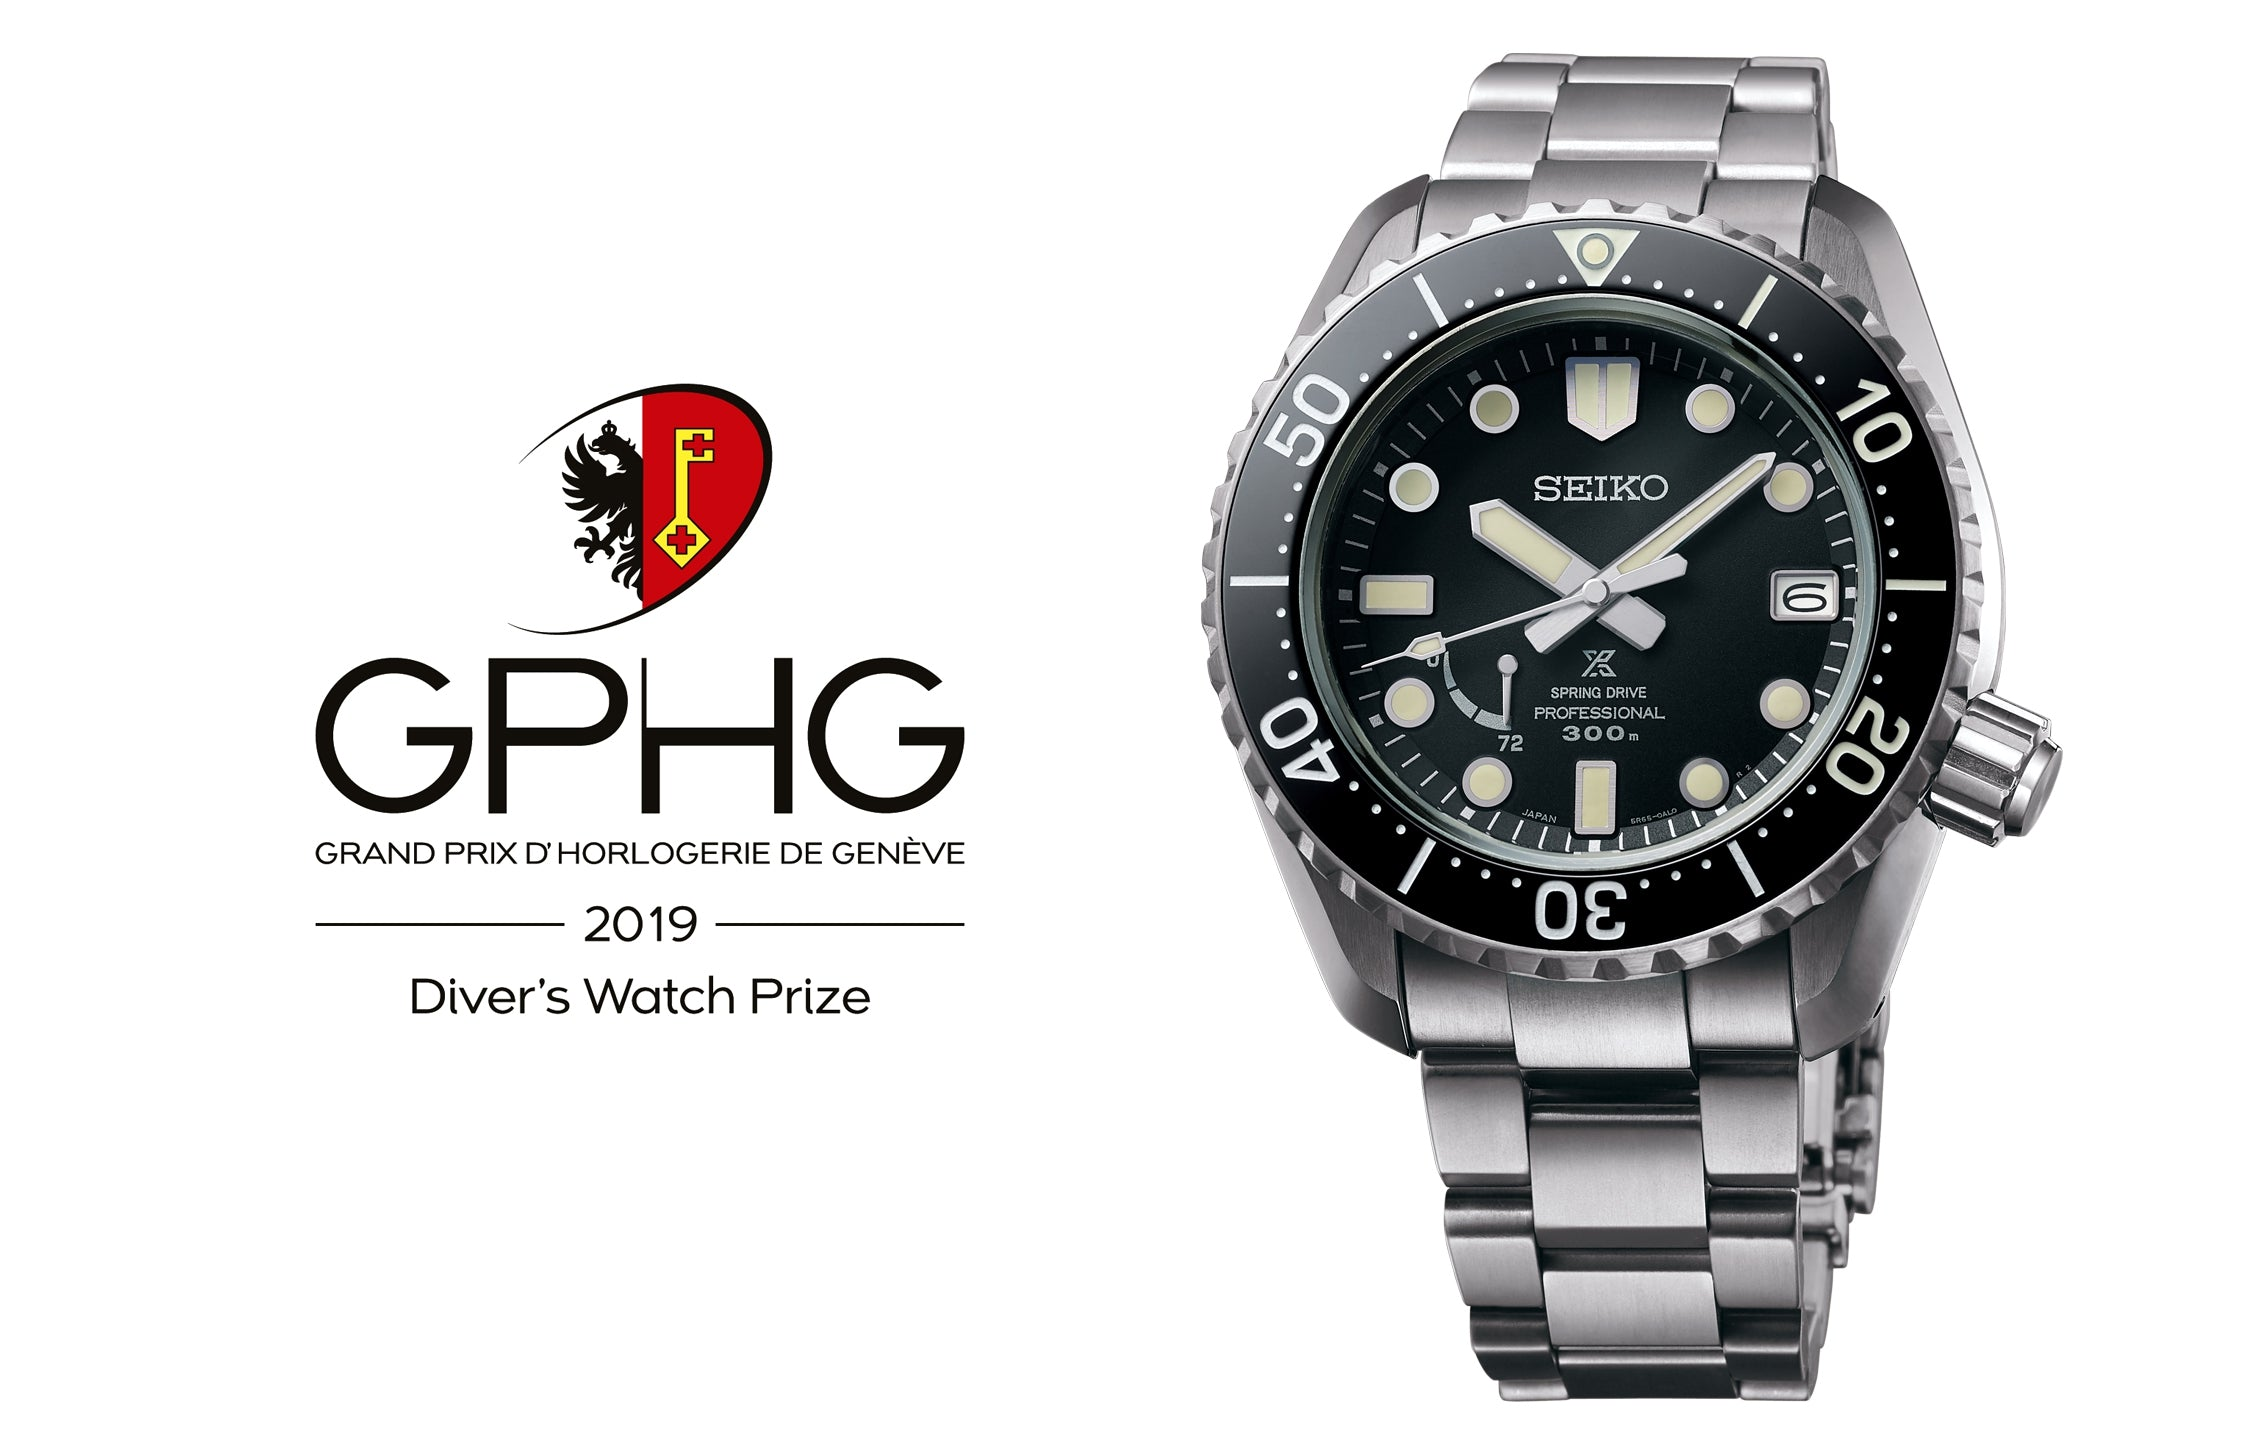 The Seiko Prospex LX Line Diver's wins the Diver's Watch Prize at the 2019 Grand Prix d'Horlogerie de Genève. A consecutive honor for Seiko in the sports/diver's category.